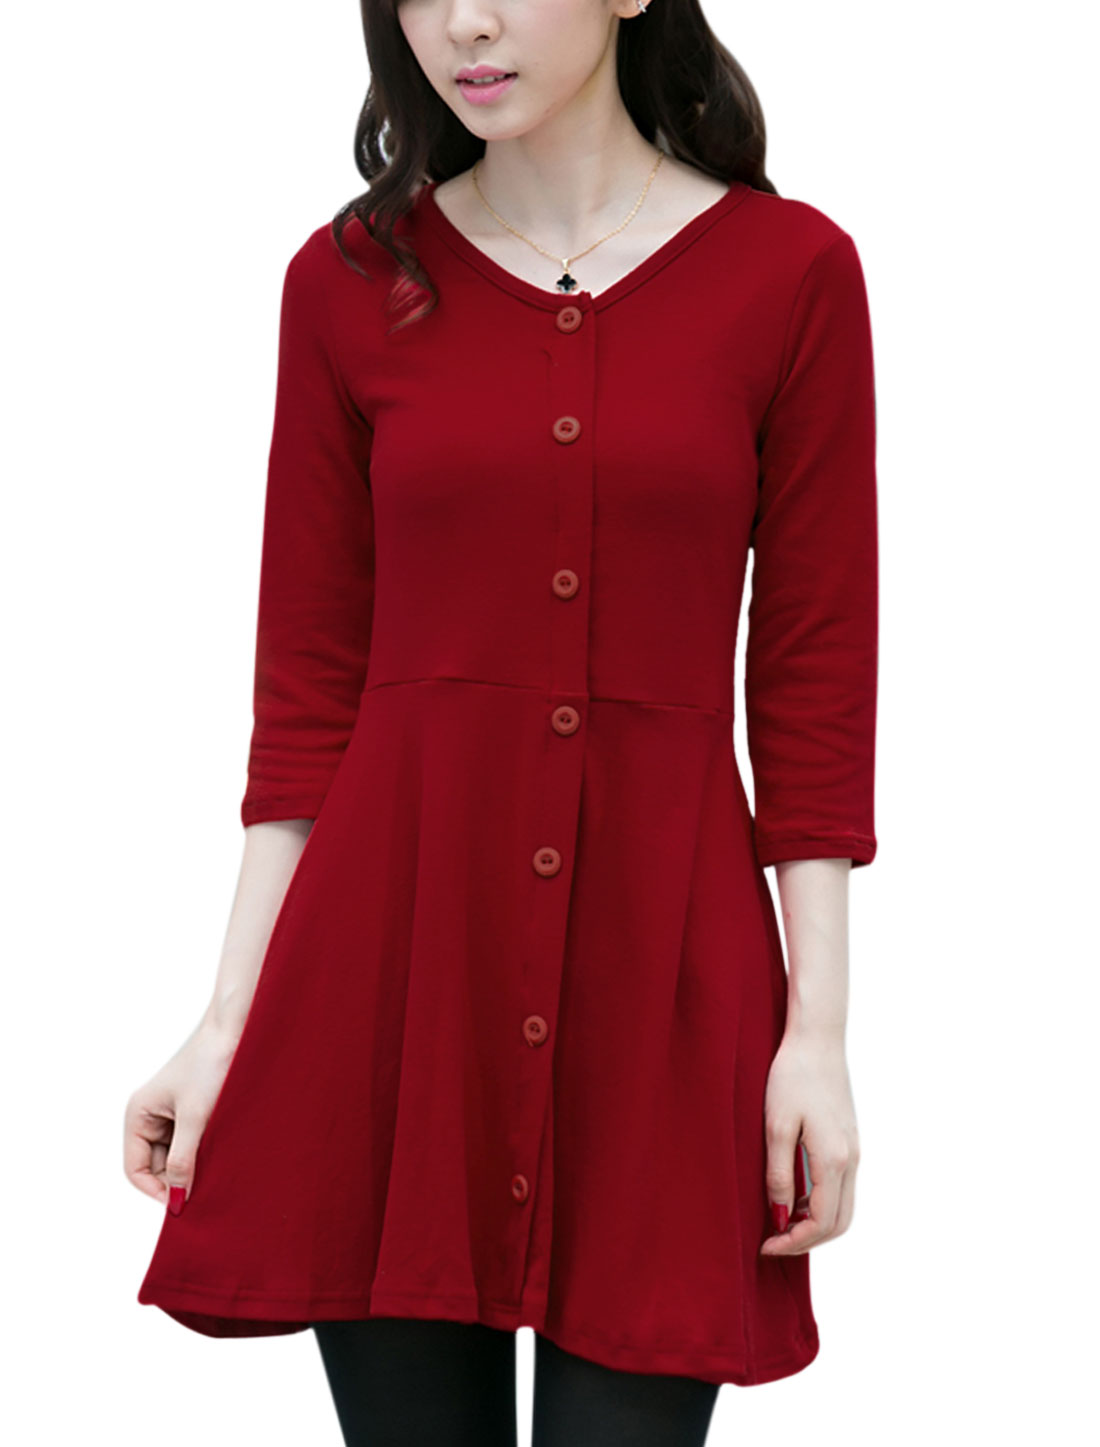 3/4 Sleeves Button Decor A-Line Dress for Women Burgundy M